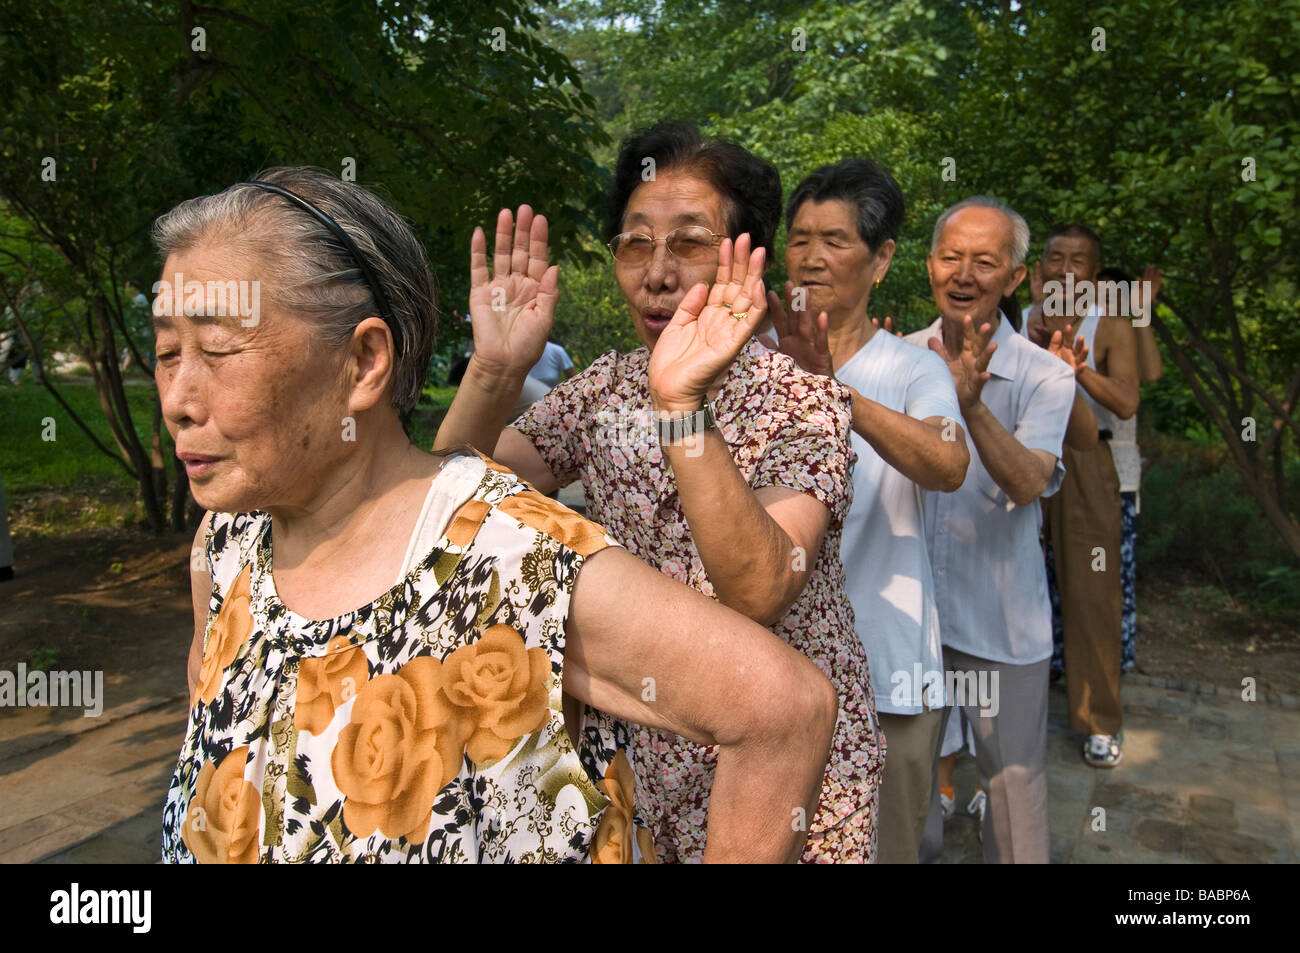 Friends line up and slap shoulders during exercises, Jingshan Park, Beijing, China - Stock Image